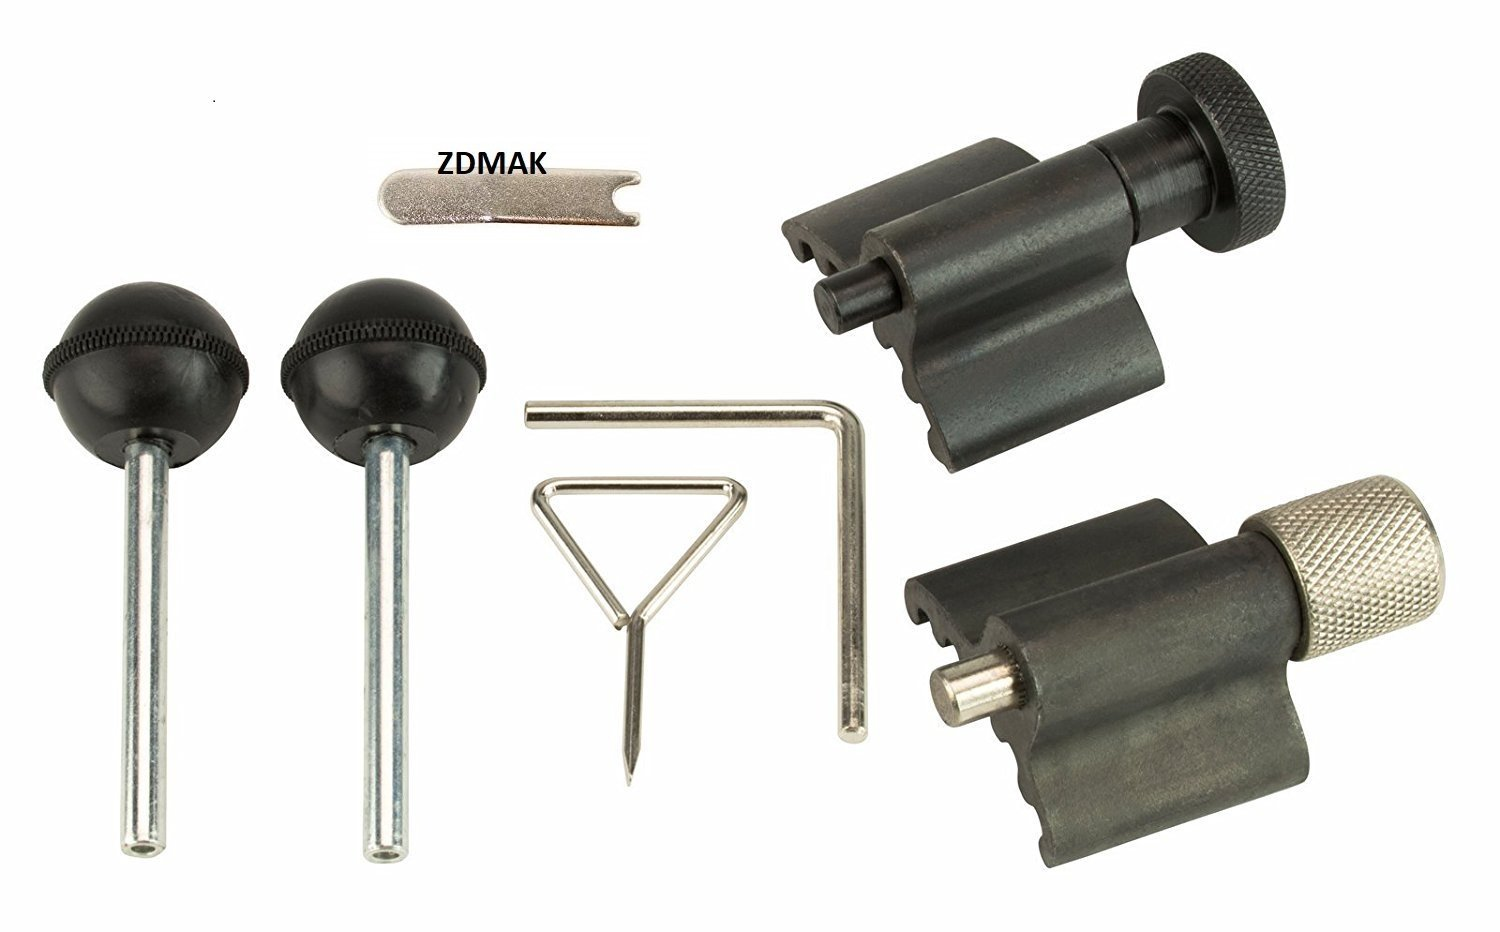 ZDMak Timing Tool Set with Crank Locks, Belts, Pins Compatible ON Audi, Volkswagen (VW), Skoda, Seat Diesel Vehicles by ZDMak (Image #1)